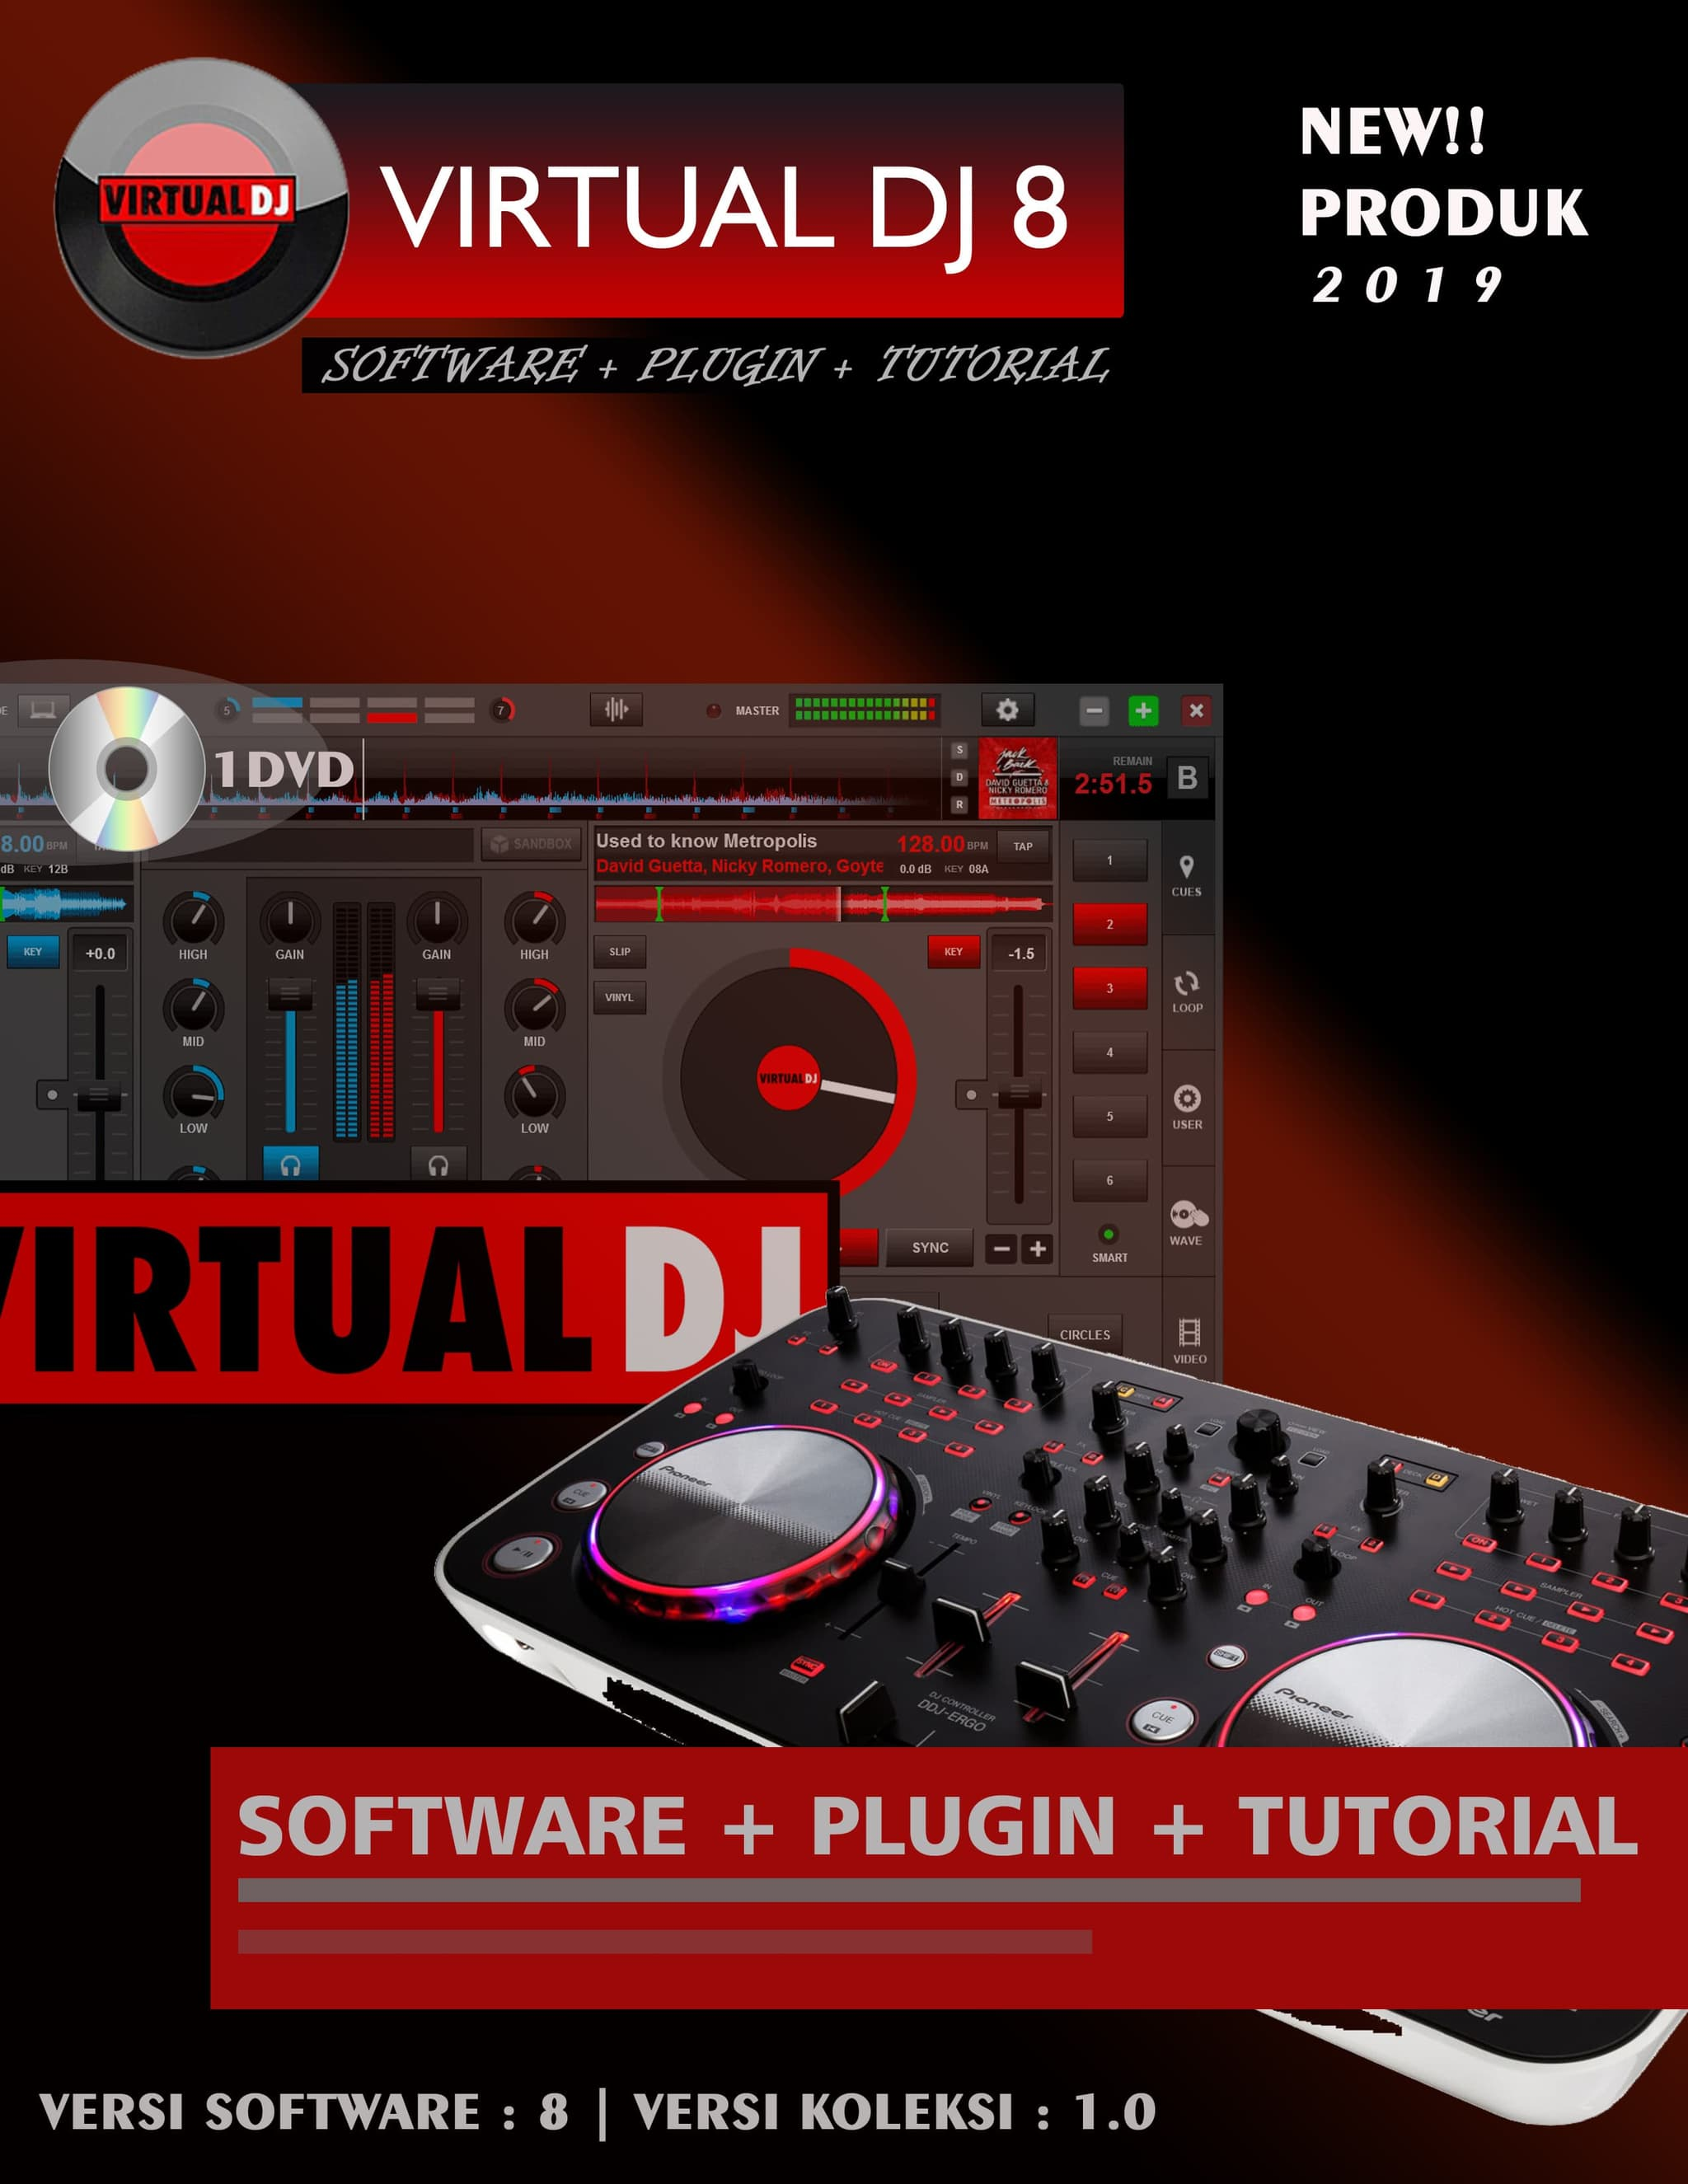 Jual Software virtual DJ lengkap Plugin dan Video tutorial